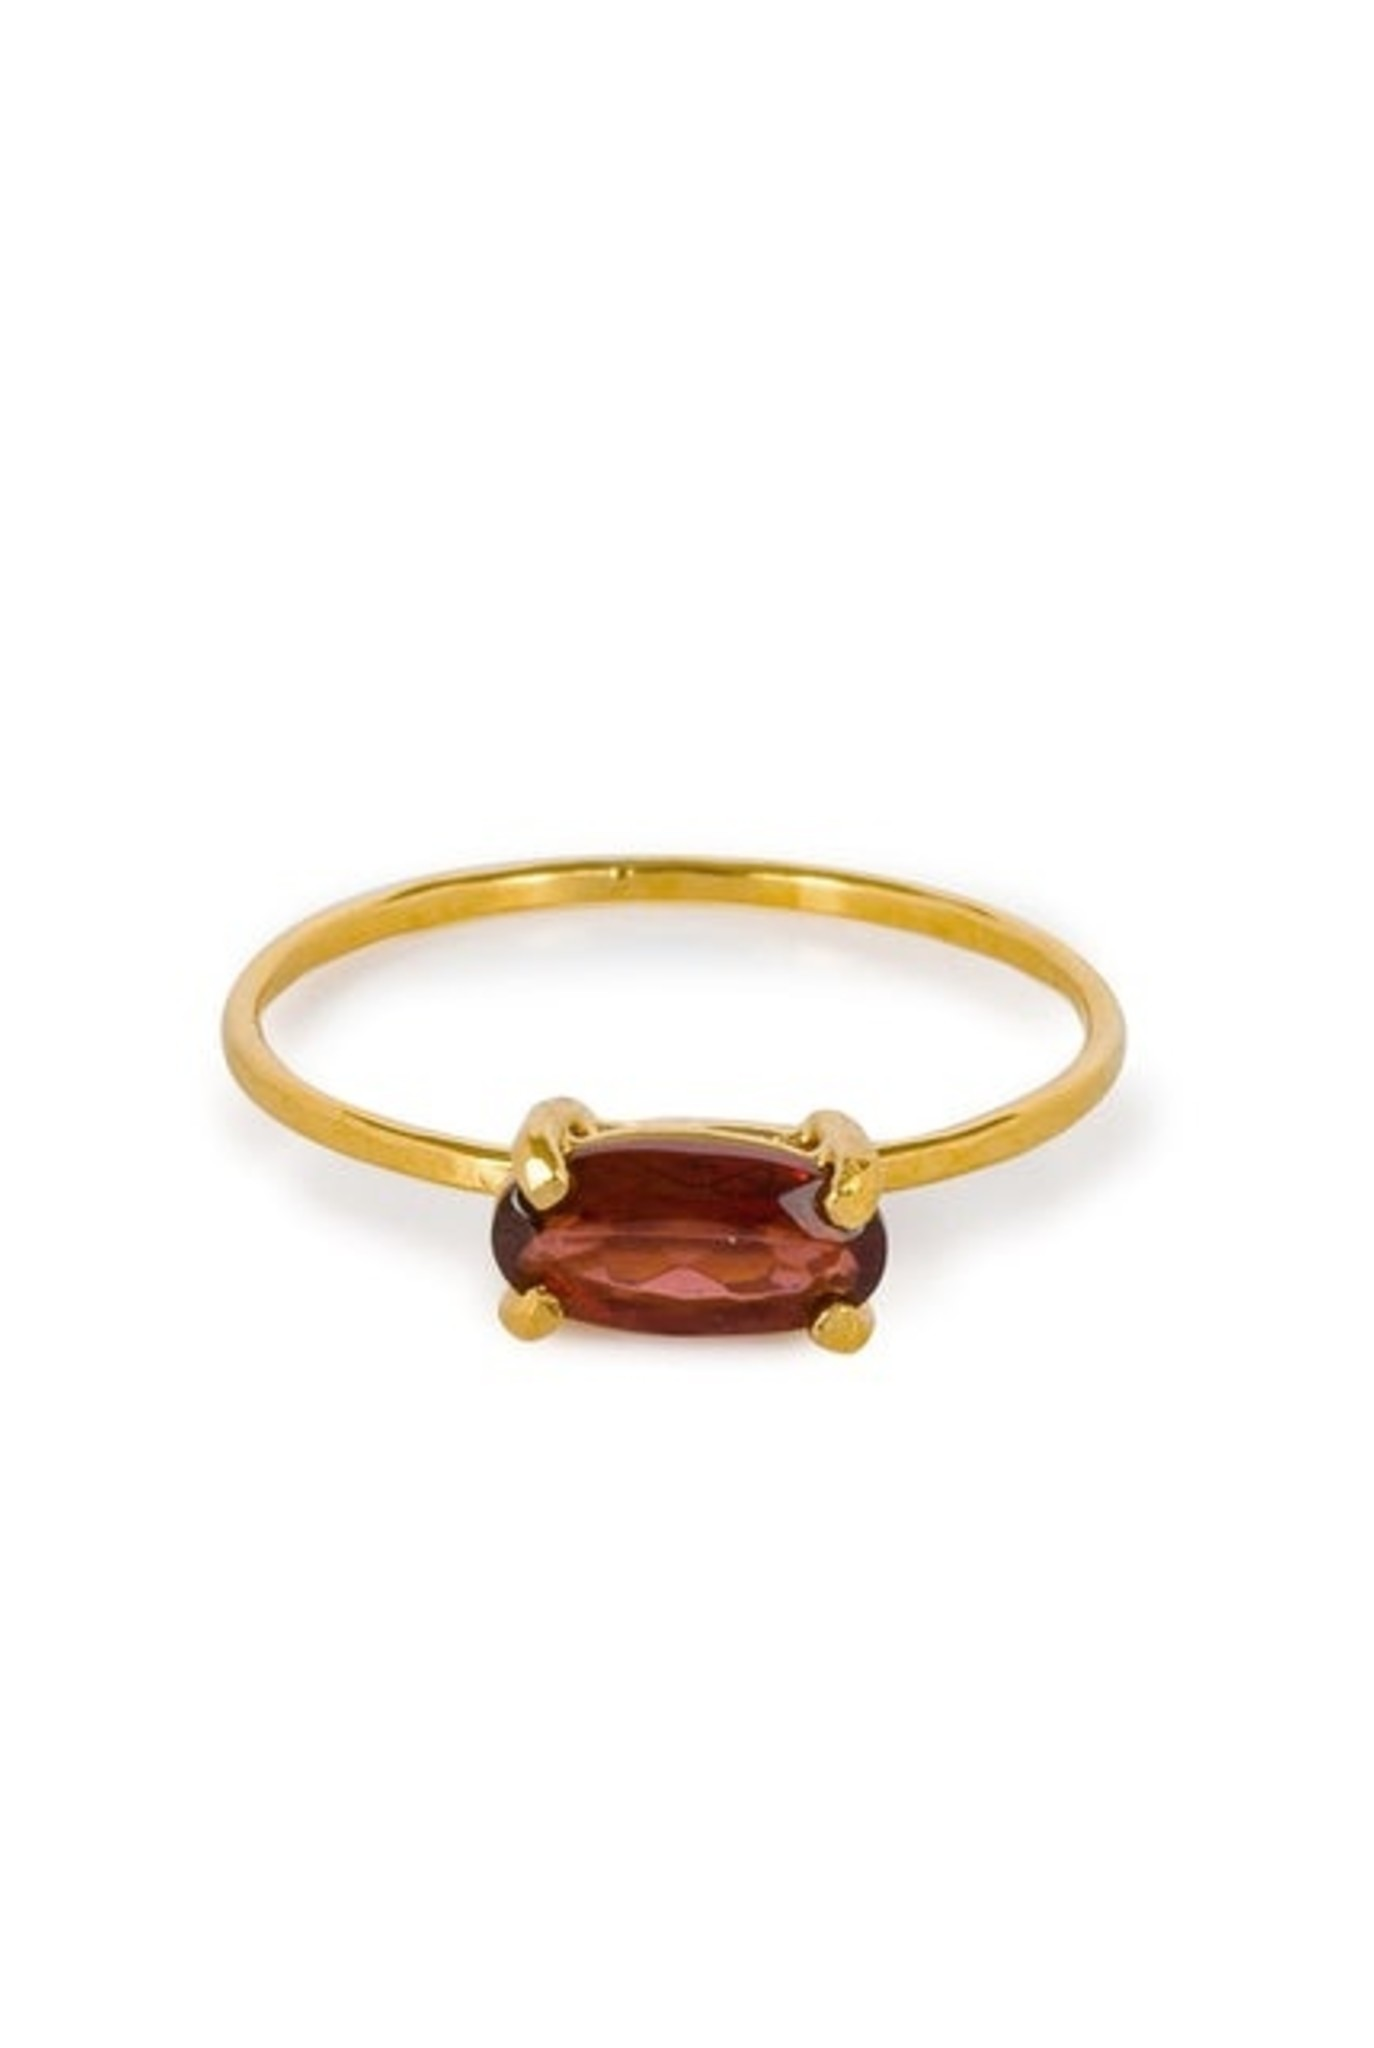 Single garnet ring gold plated